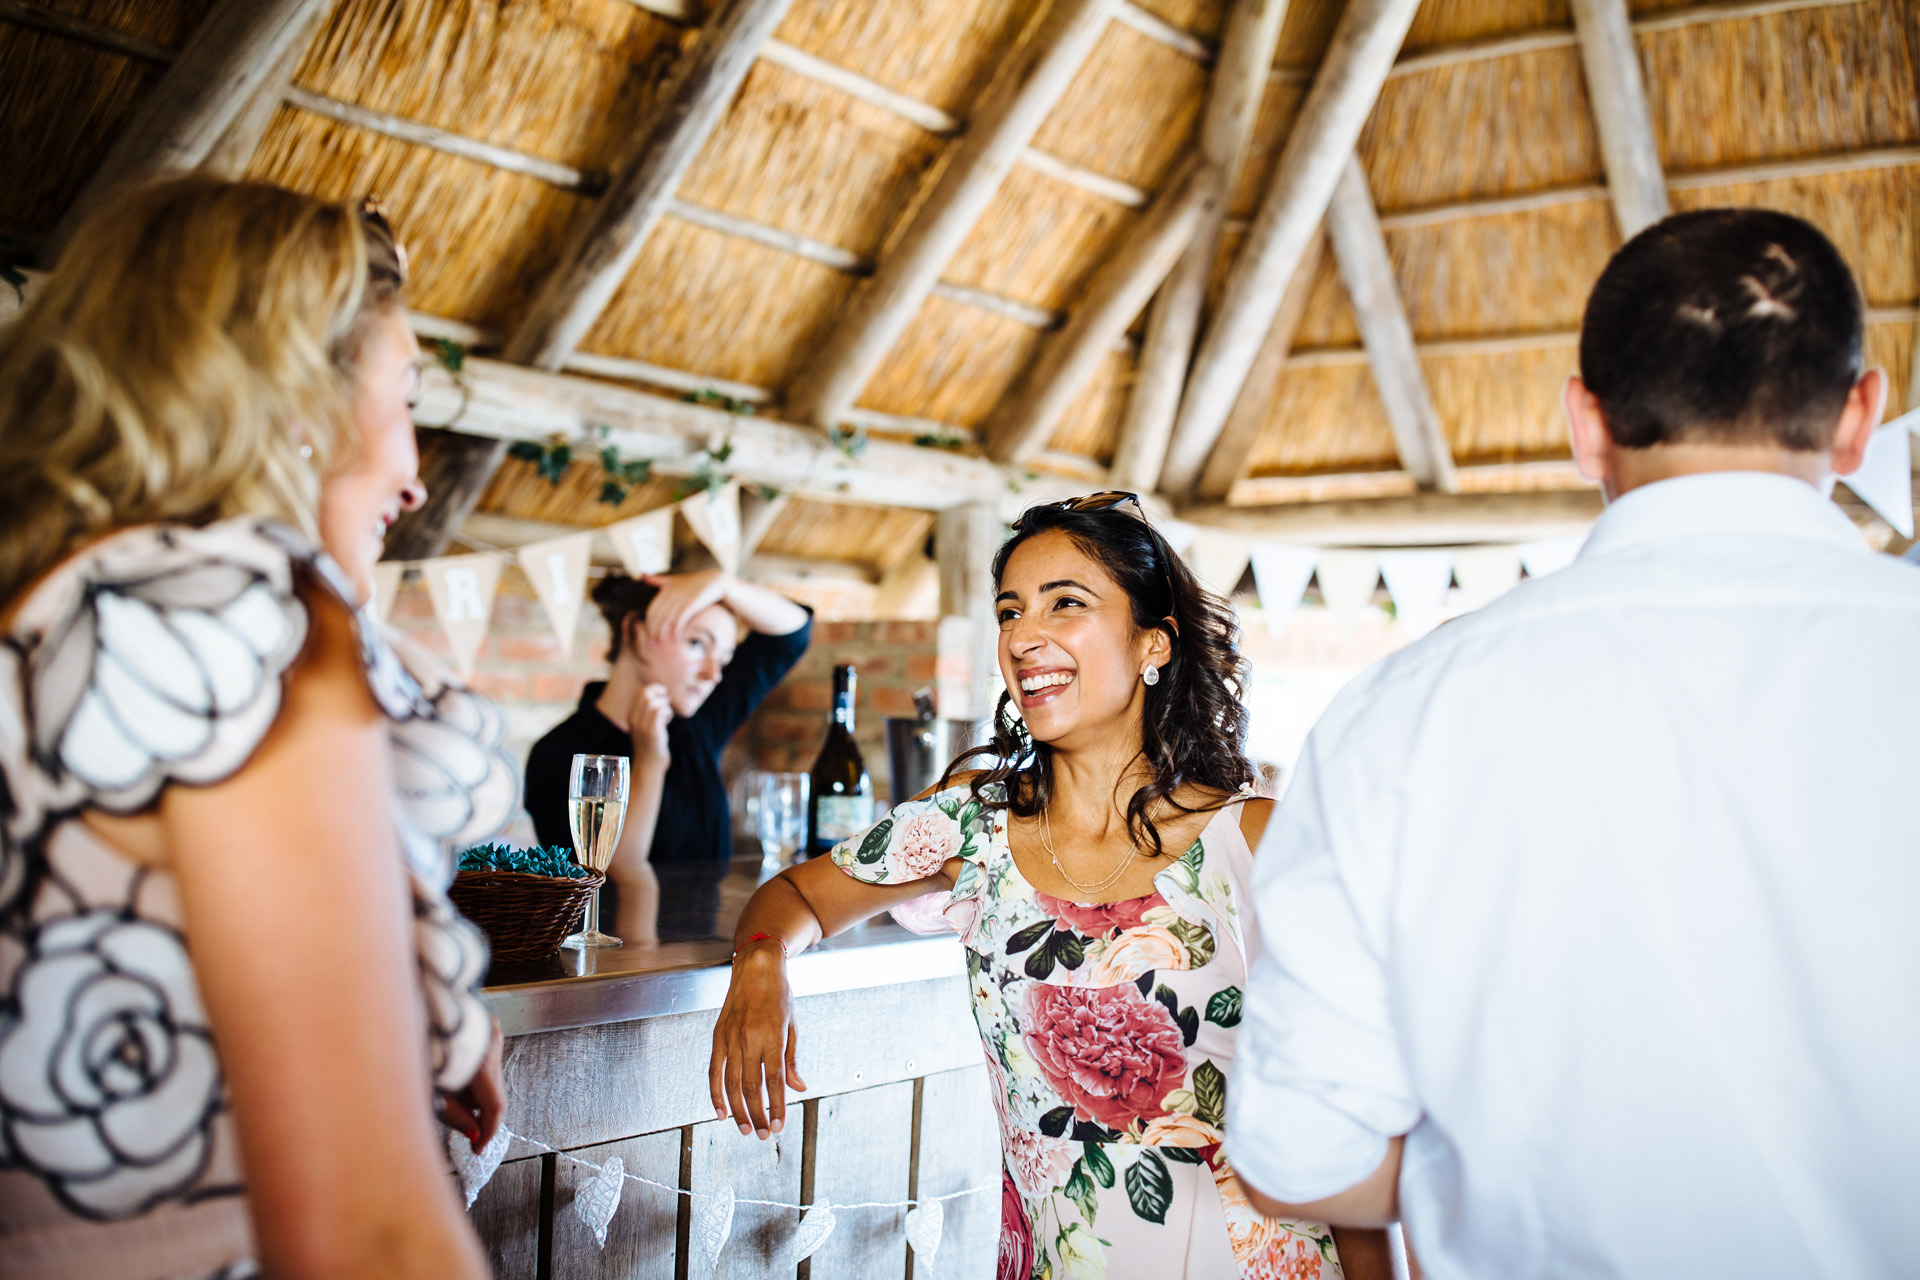 lady in floral dress leaning against the bar in the barn smiling